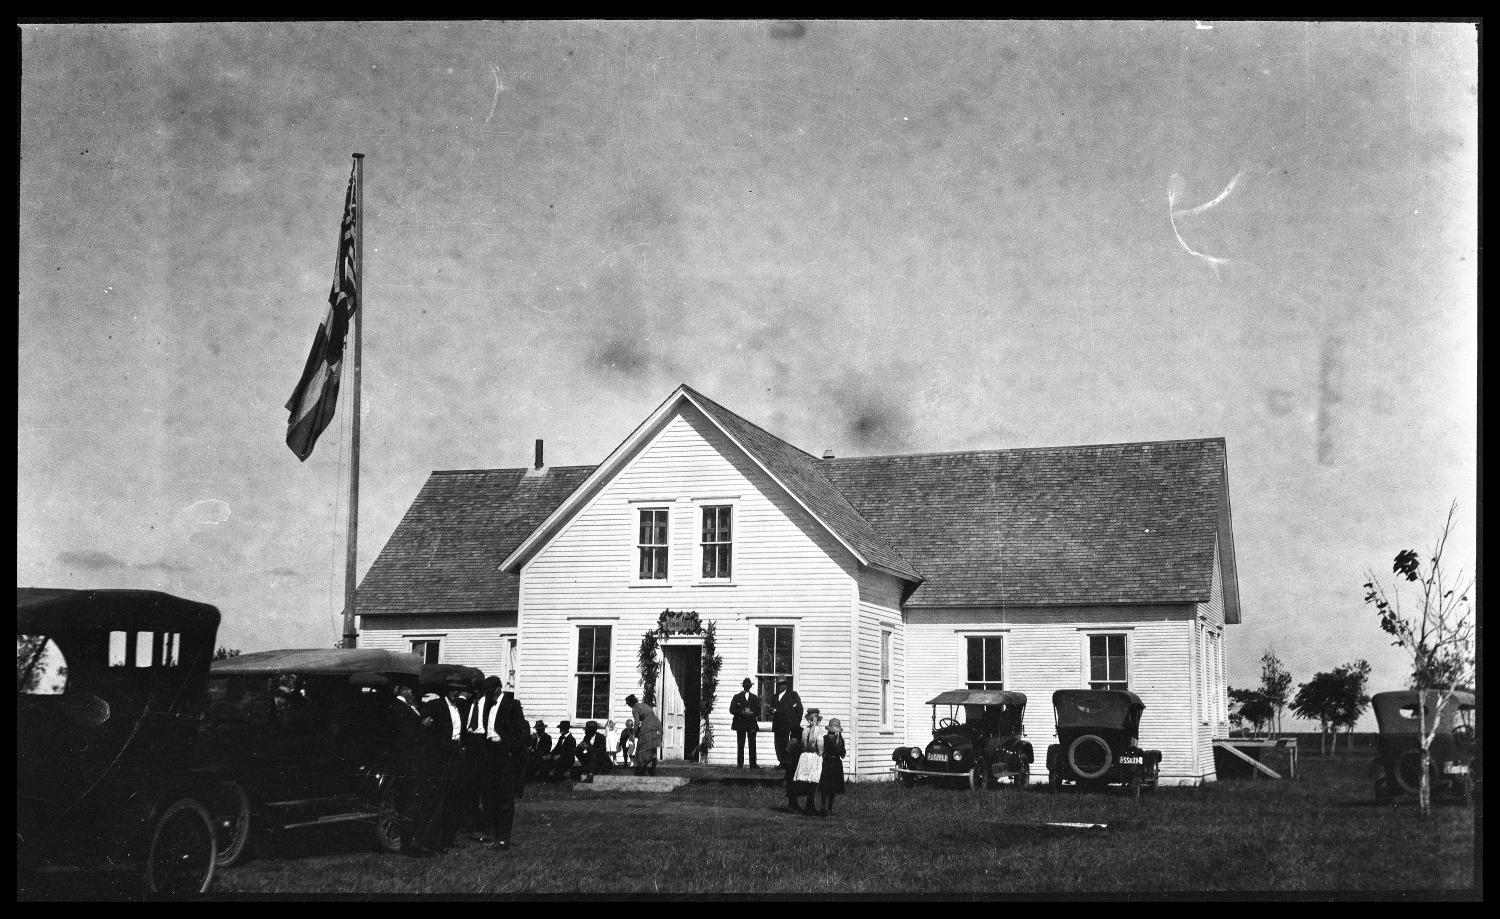 Danevang Lutheran Church, Copy negative of Danevang Lutheran Church in Danevang, Texas. Several groups of people are standing outside the church; some are sitting on the porch while others are standing near parked automobiles. Two flags, one American and one Texan, fly over the church, and a floral garland hangs over the front door.,